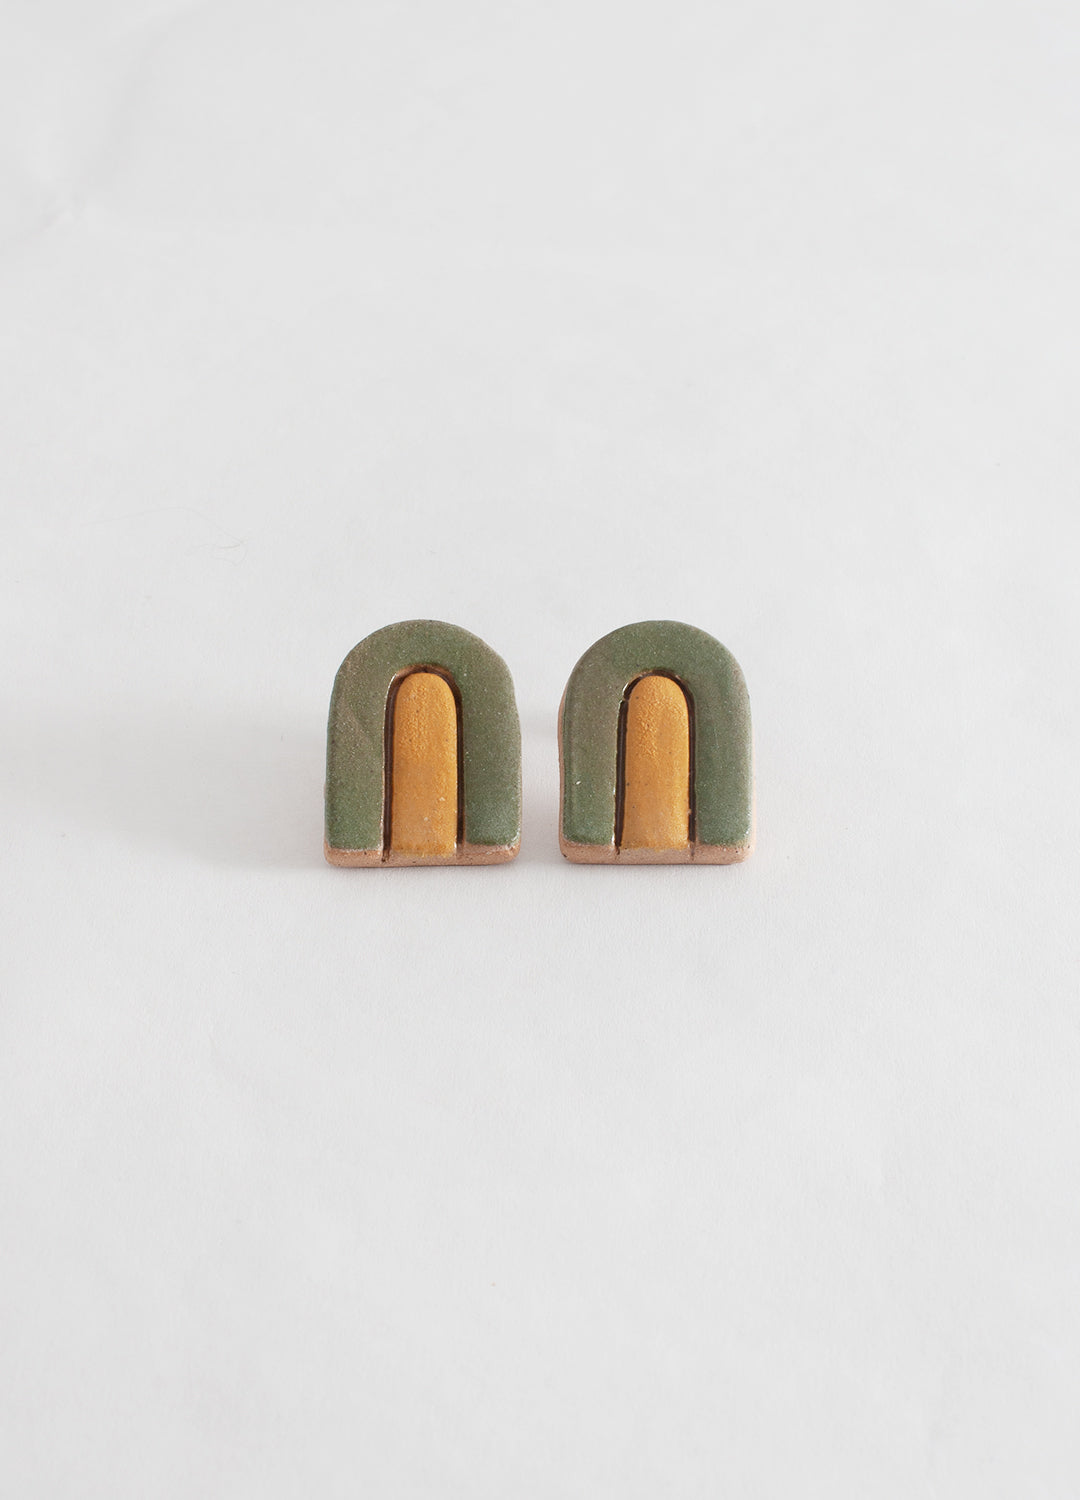 Large Arch Earrings  - Avocado Green